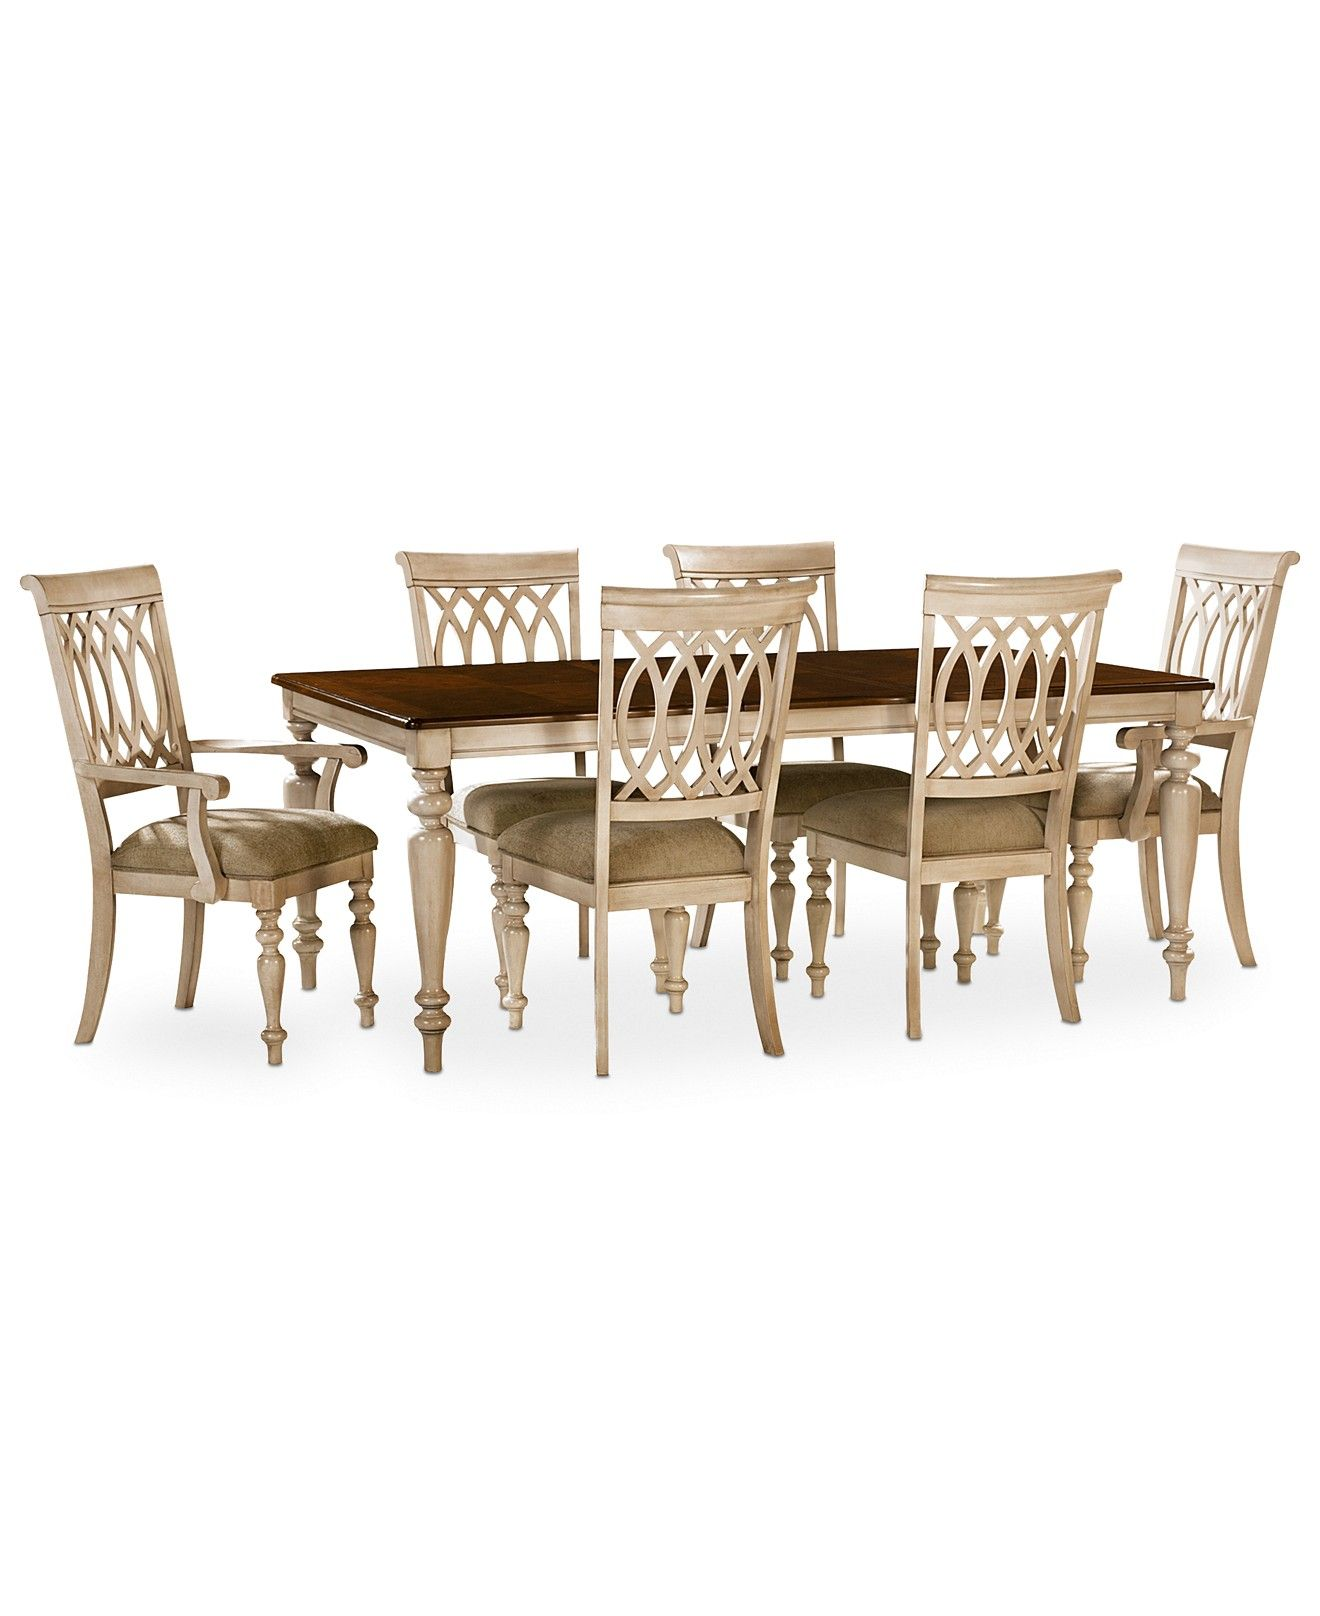 Dovewood Dining Room Furniture 7 Piece Set Table 4 Side Chairs